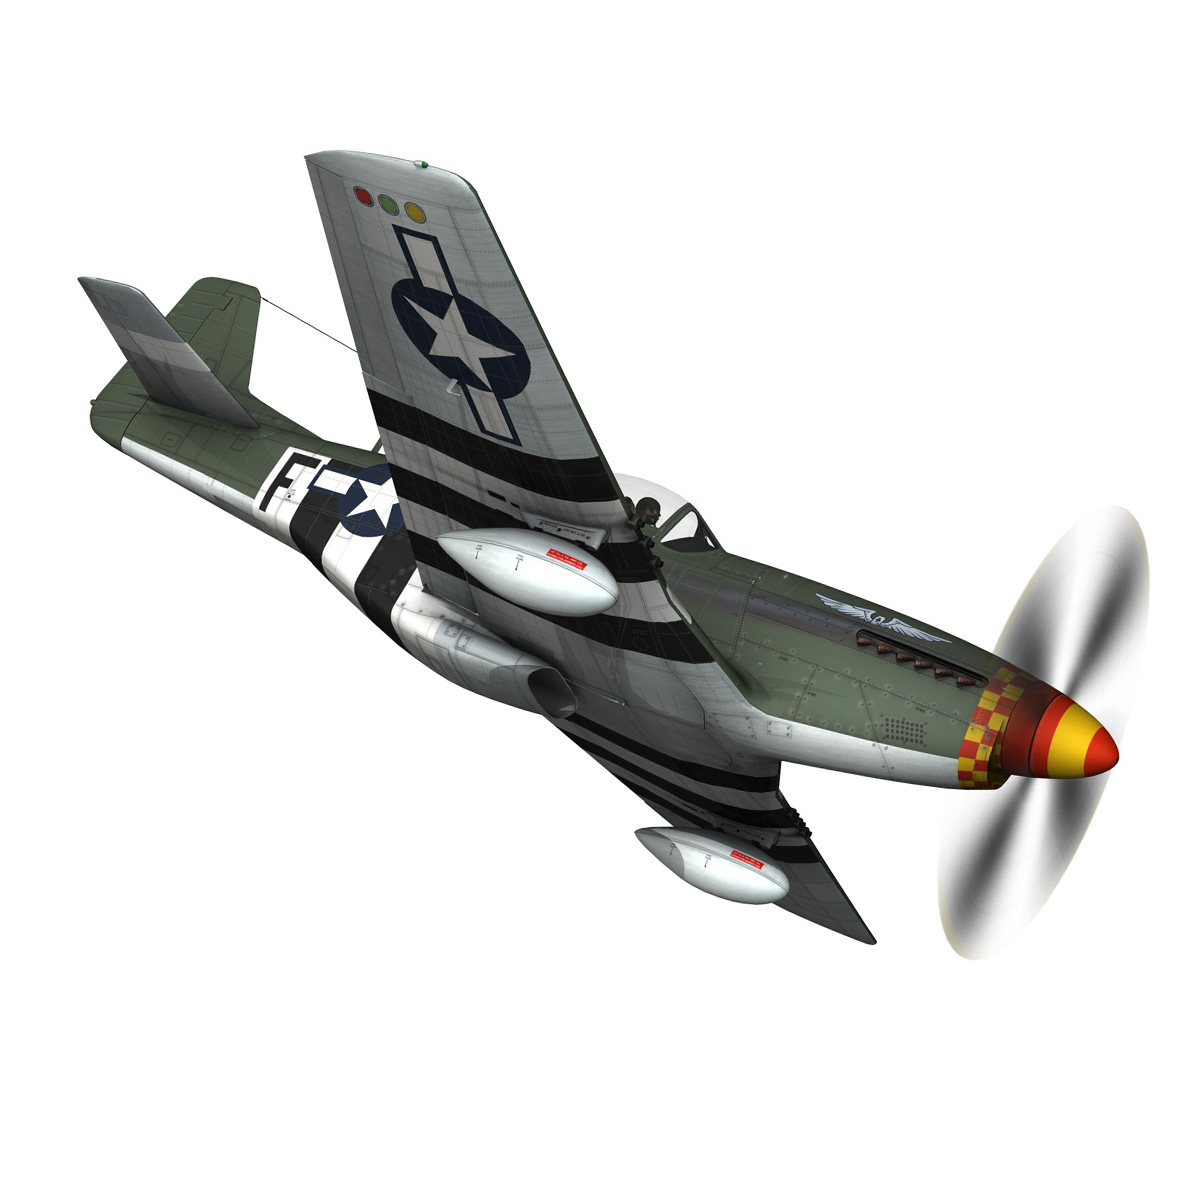 north american p-51d mustang – speedball alice 3d model fbx c4d lwo obj 280316